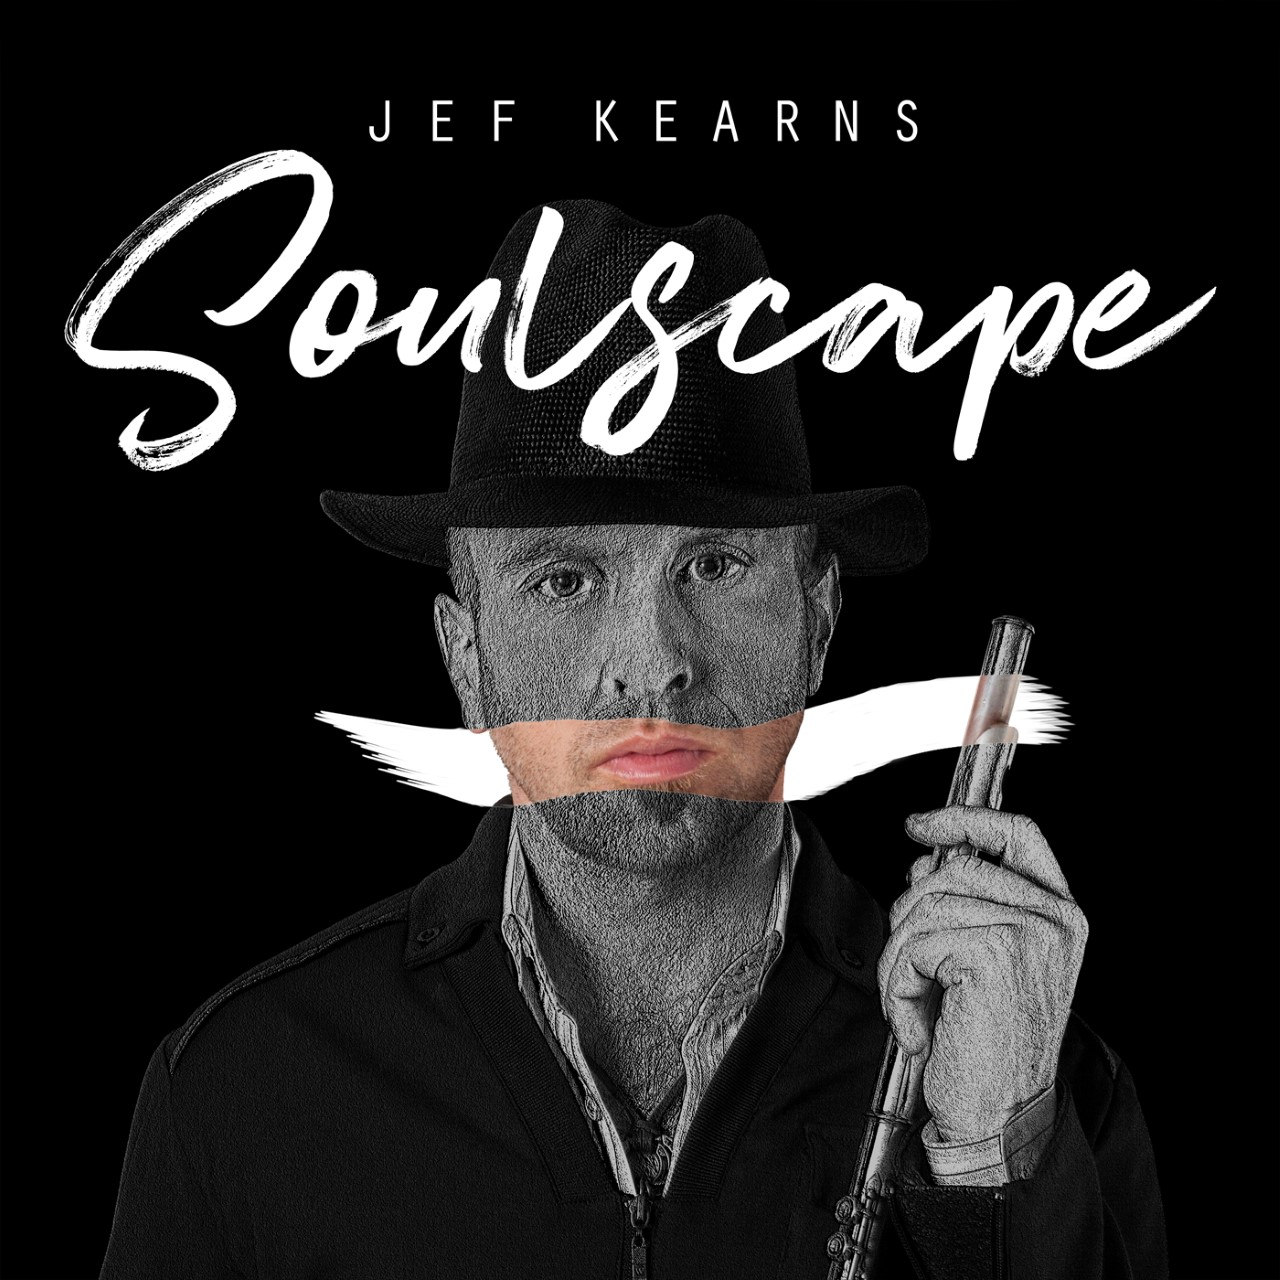 Jef-Kearns-Soulscape-Single